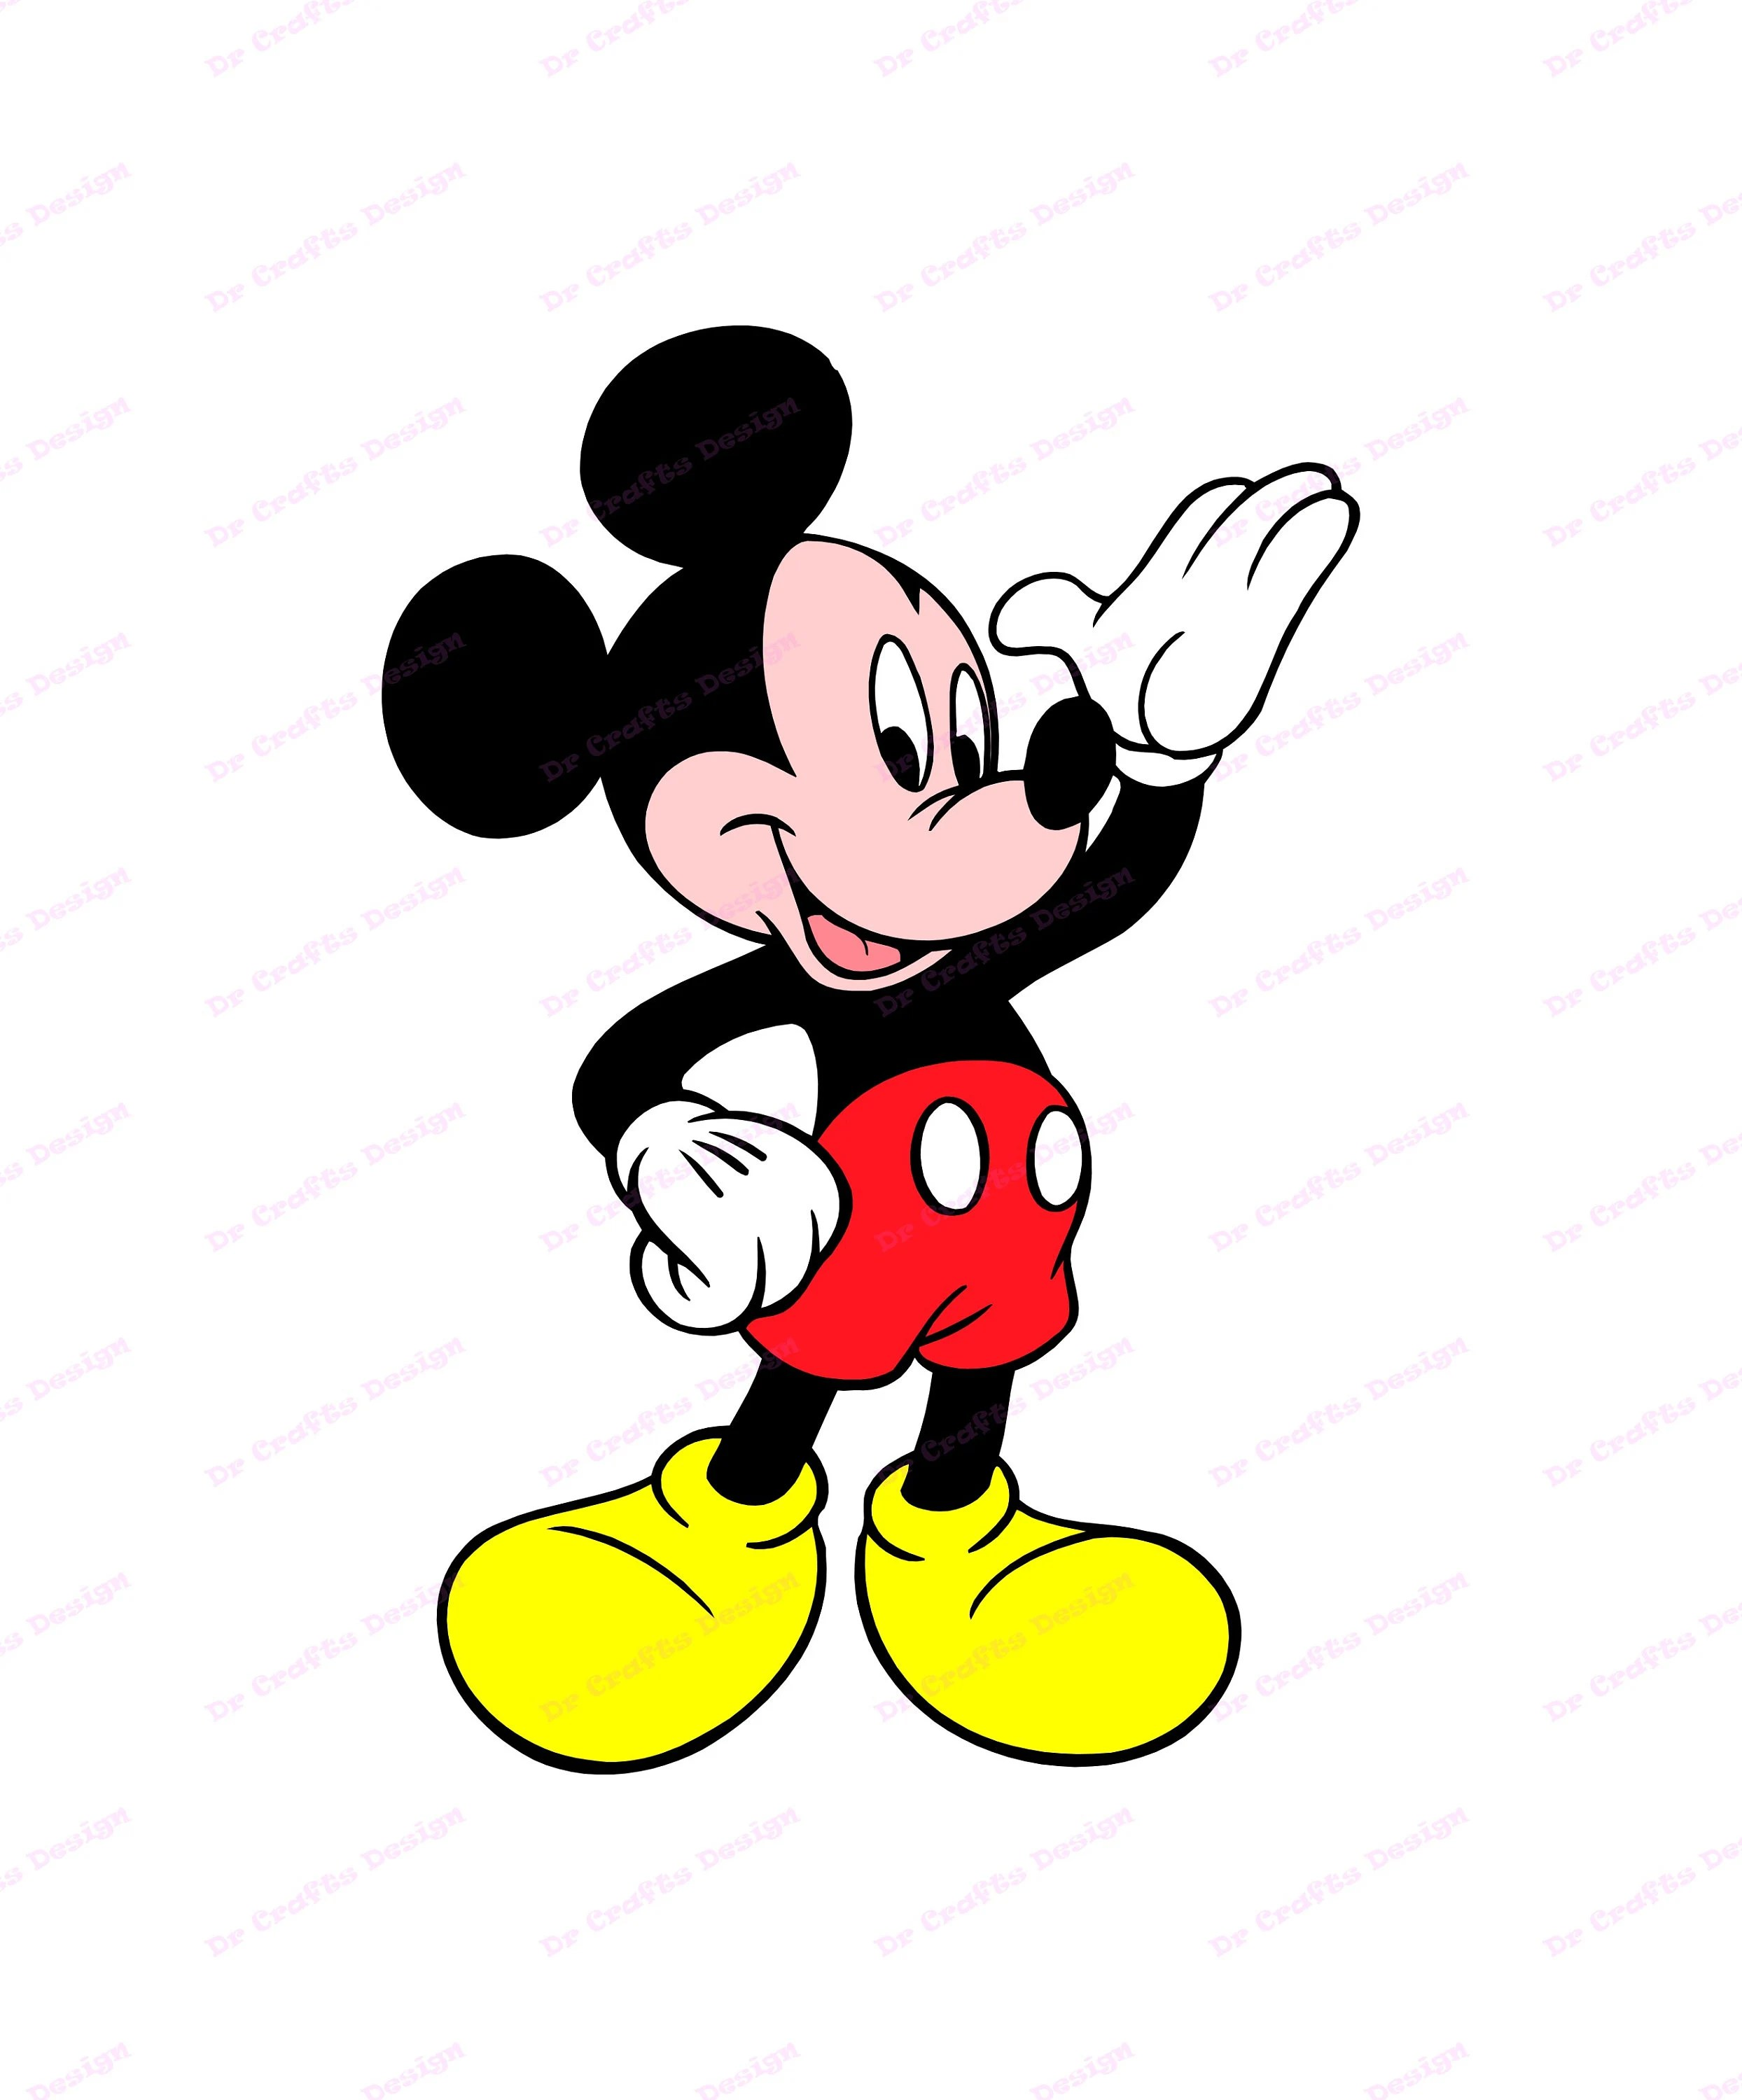 Mickey Face Svg : mickey, Mickey, Mouse, Cricut, Silhouette